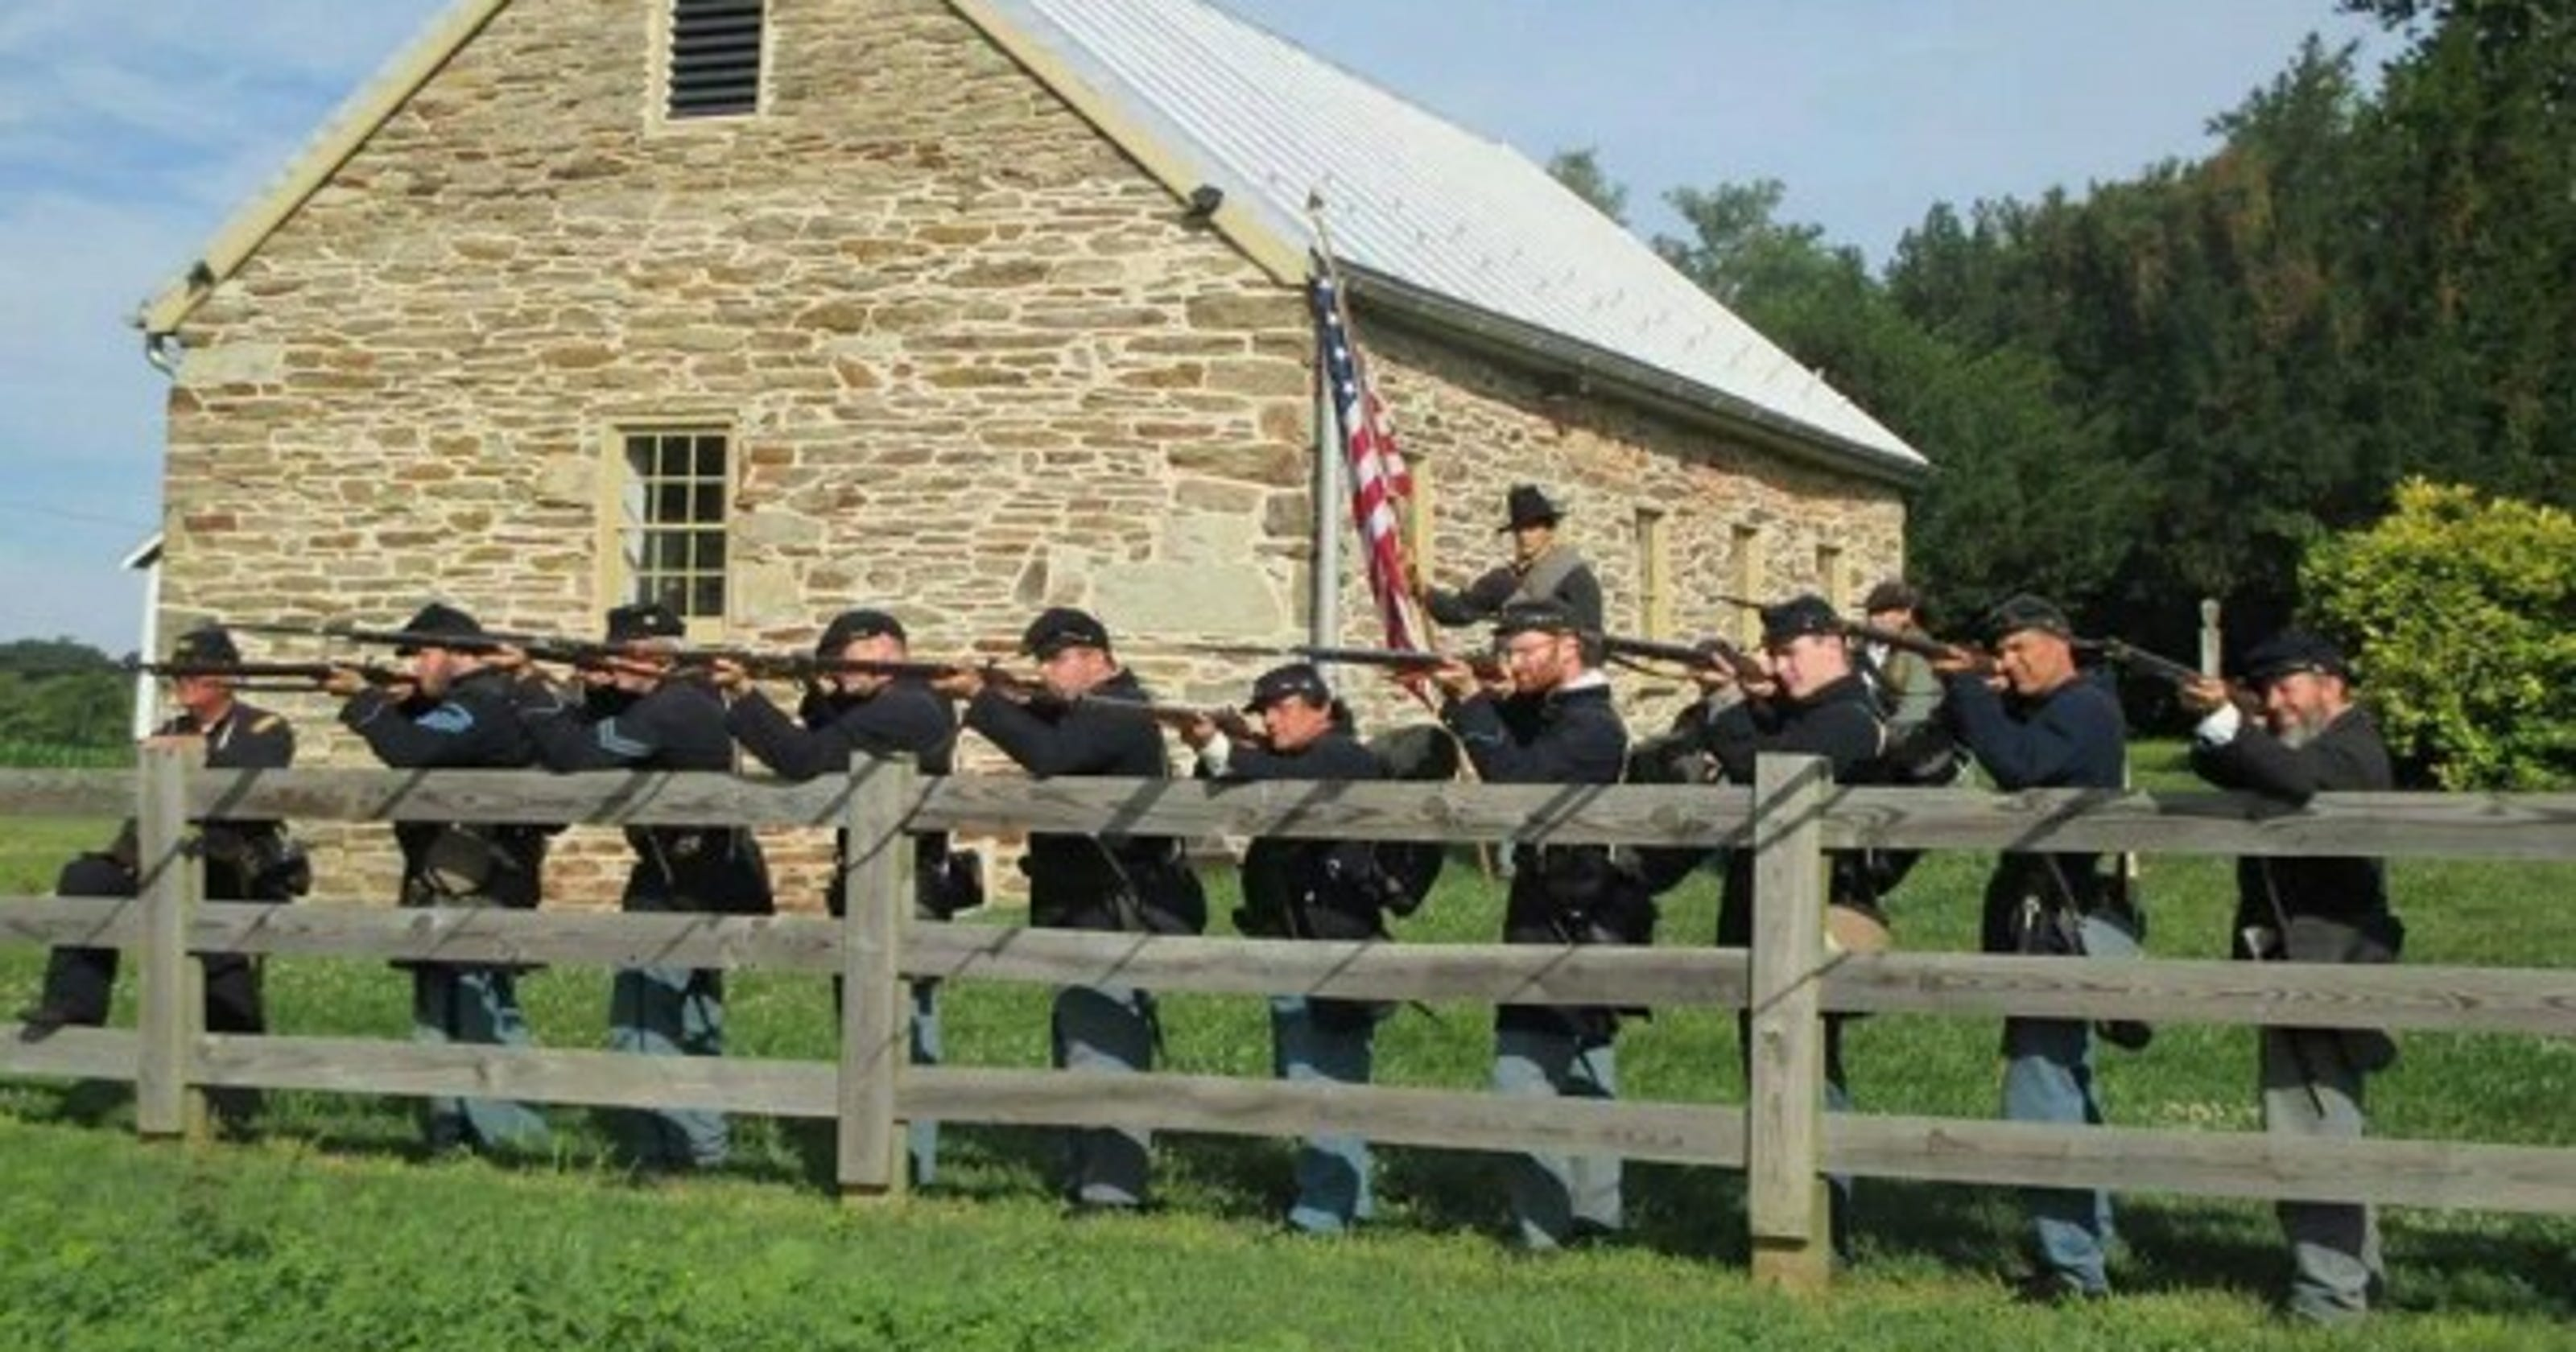 Join the Union army! Reenactors wanted! 87th PA schedule released!